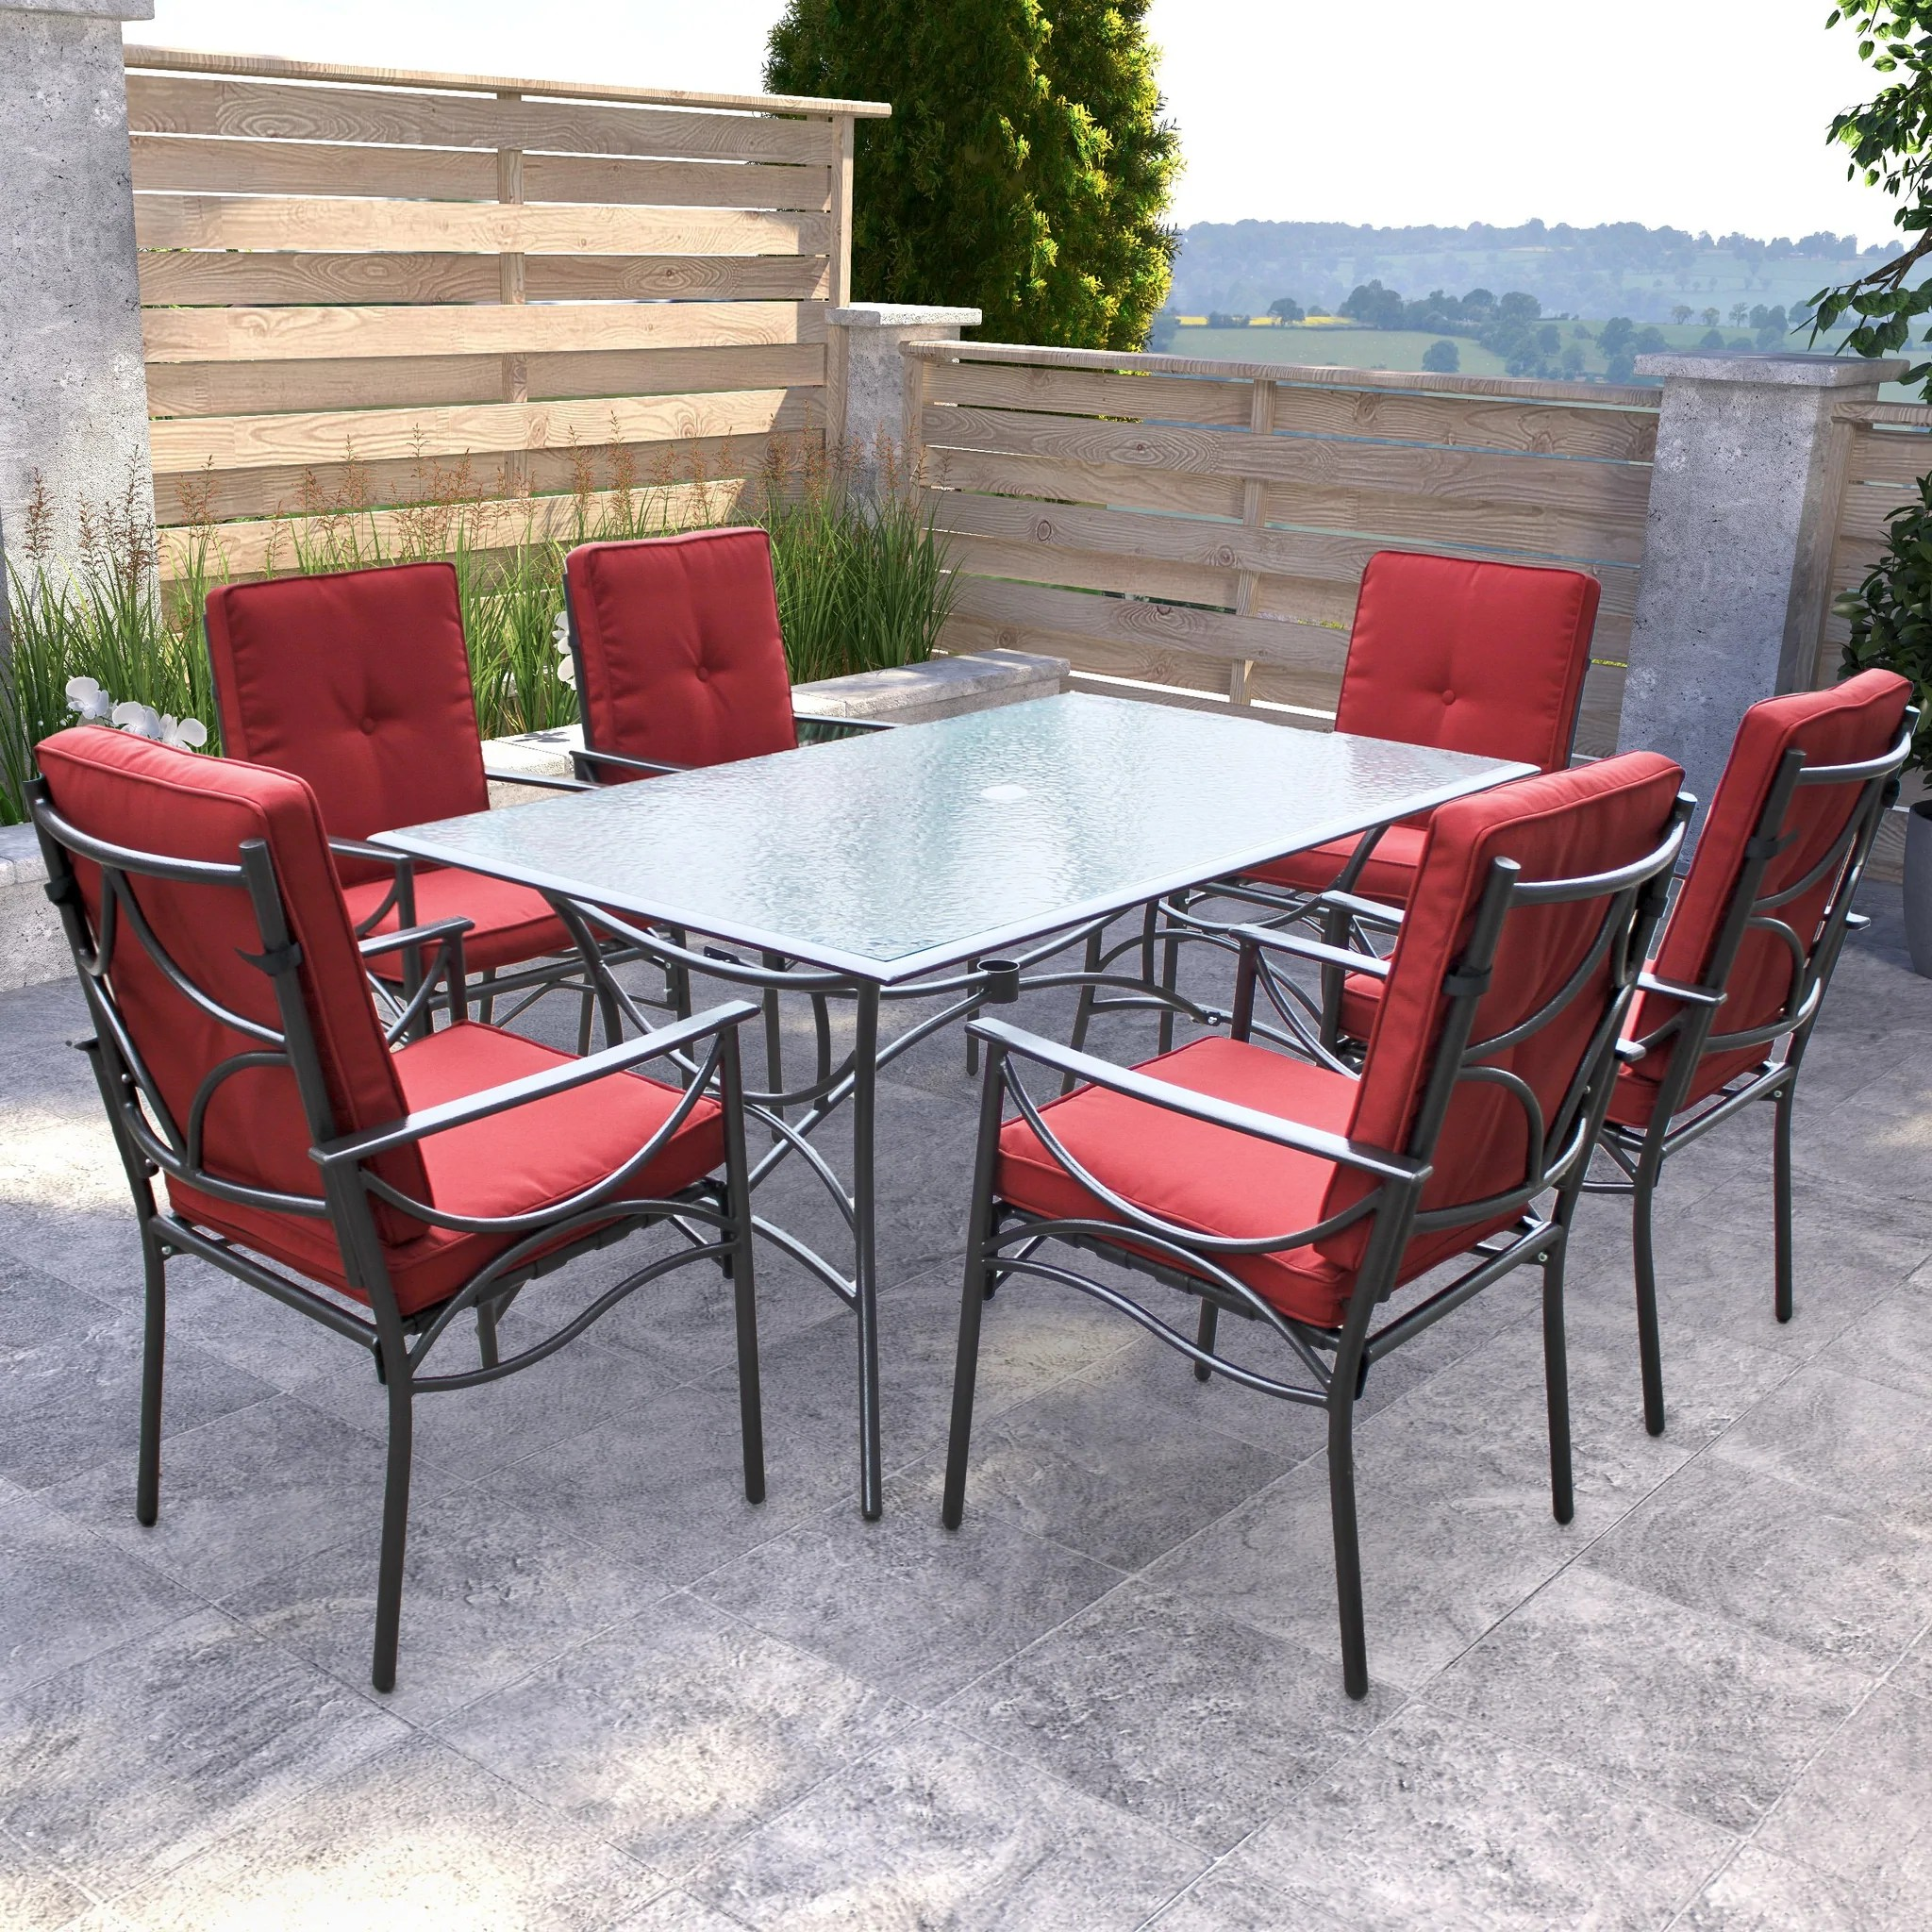 7pc Charcoal Black And Red Patio Dining Set Clearance Corliving Furniture Us - Garden Furniture Dining Set Clearance